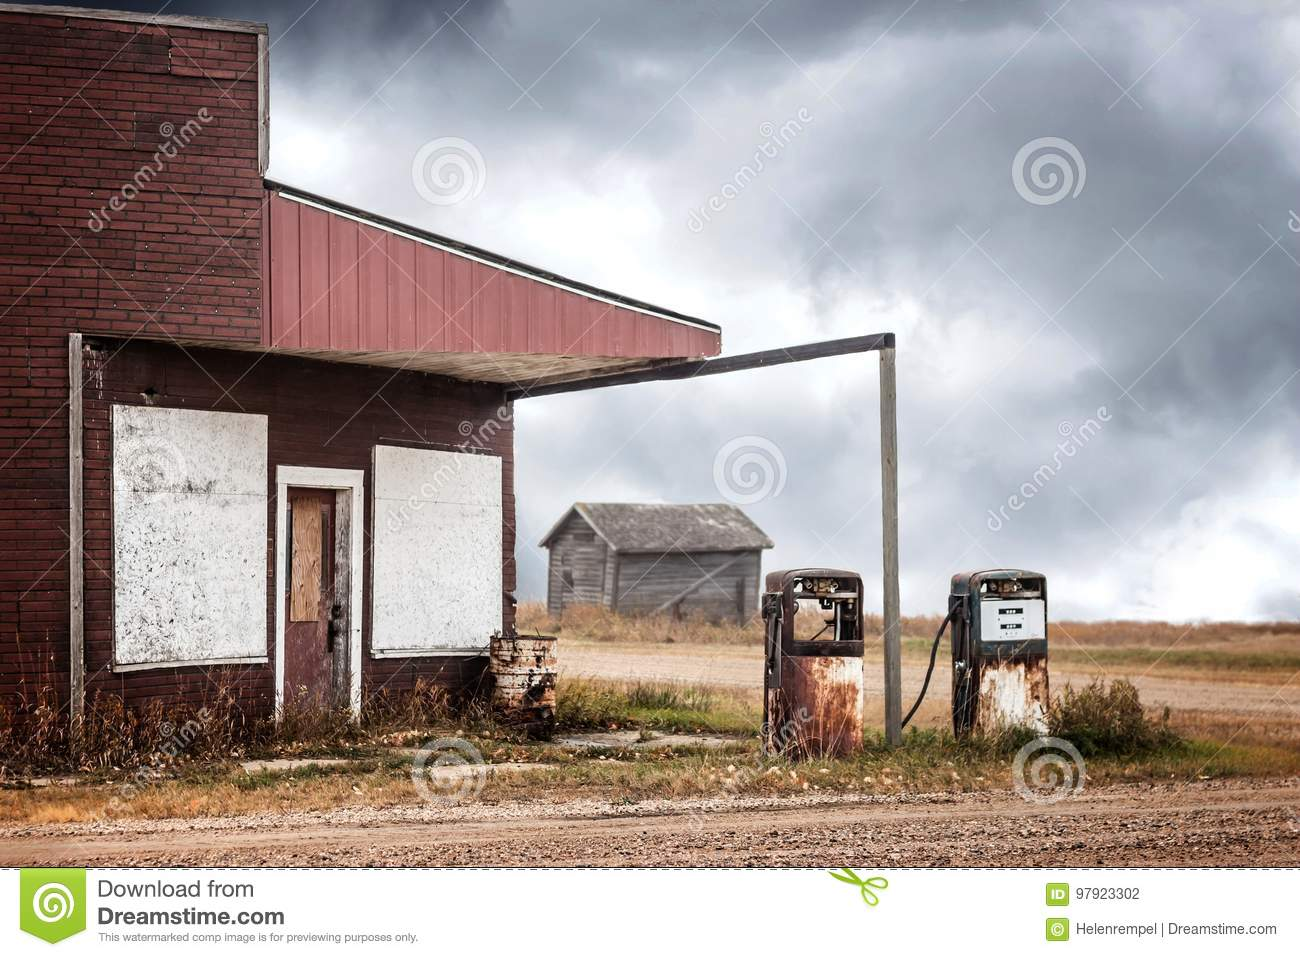 Old Abandoned Gas Station With Two Broken Gas Pumps Stock Photo Image Of Copy Rusty 97923302